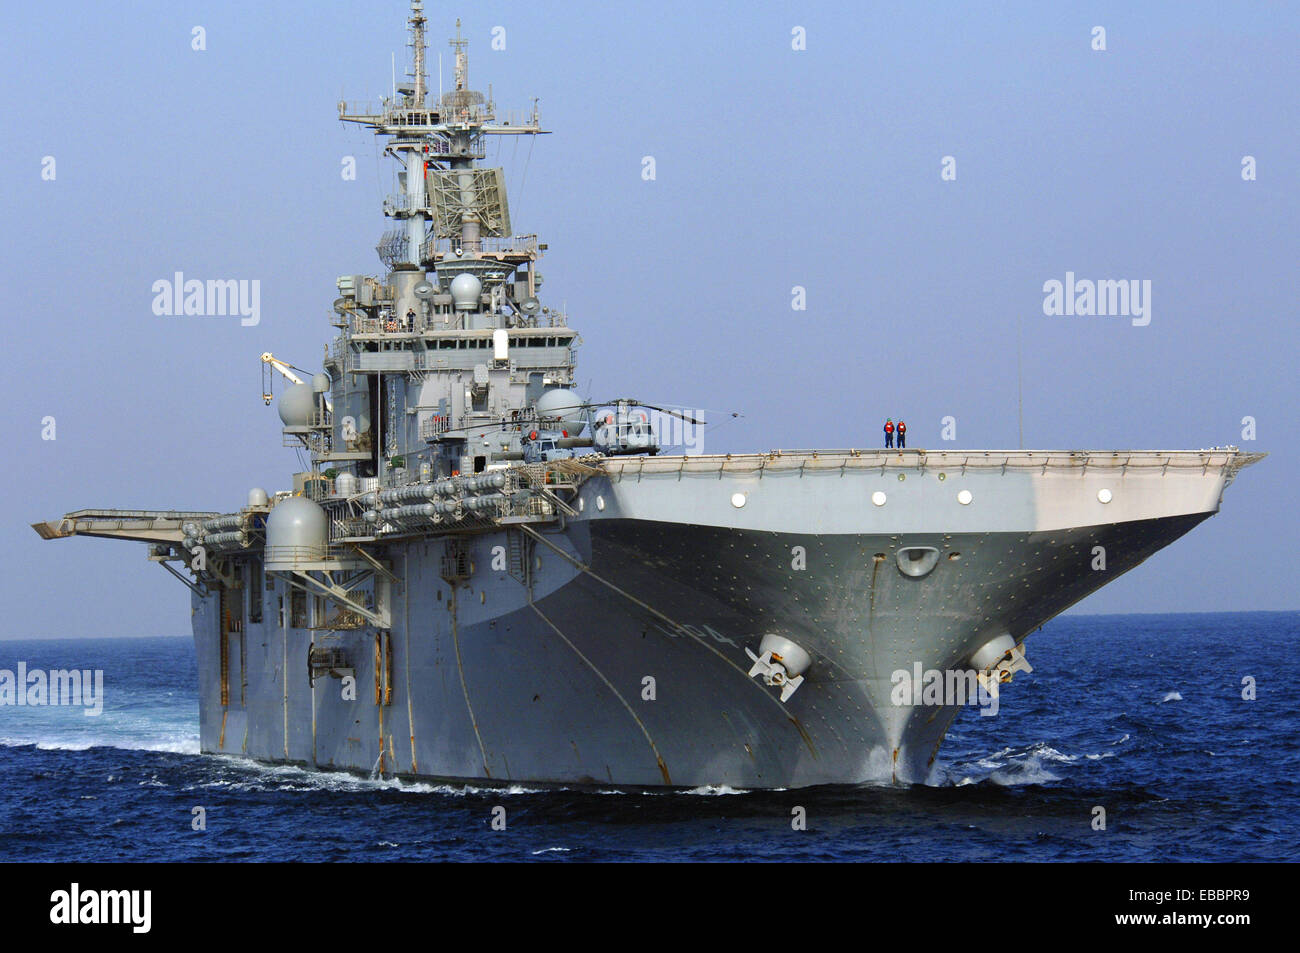 USS Boxer (LHD 4) prepares to come alongside USNS Supply (T-AOE 6) for an underway replenishment Nov. 22, 2006. - Stock Image